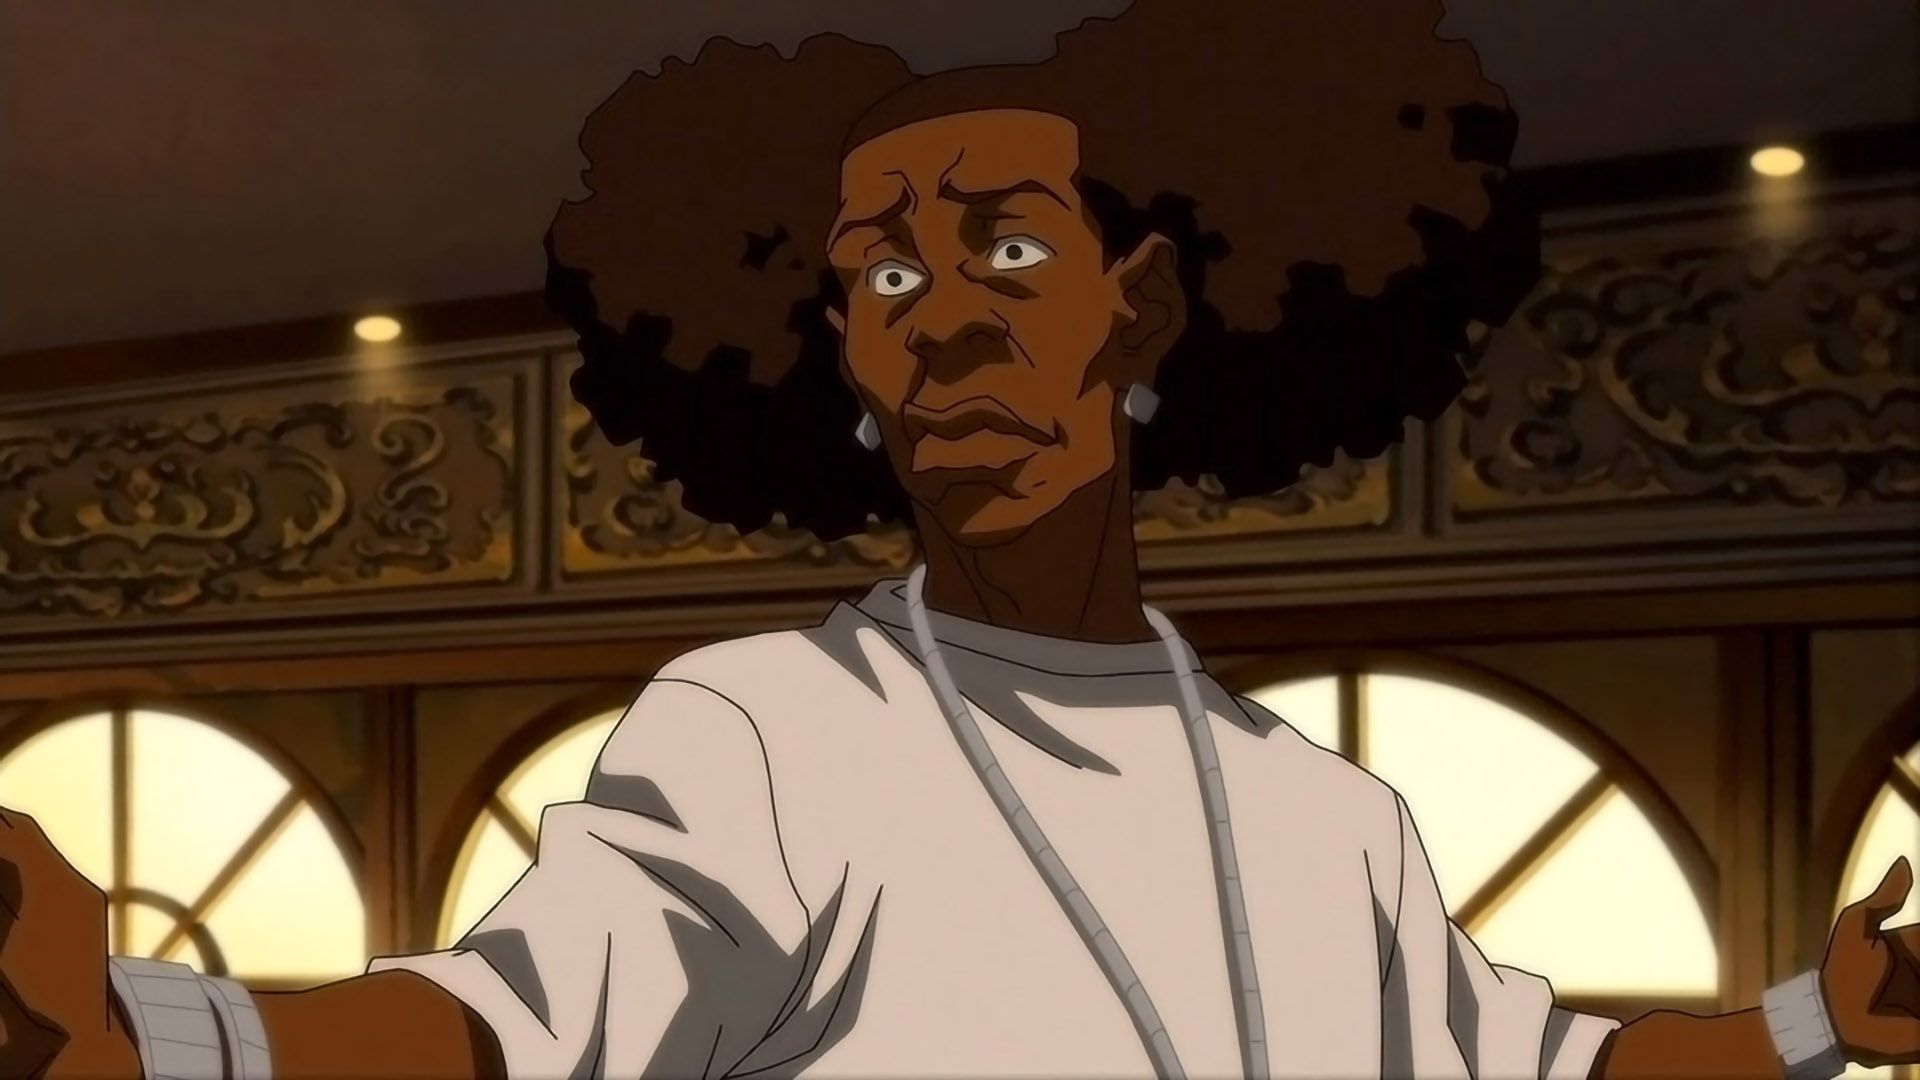 Watch The Boondocks Episodes And Clips For Free From Adult Swim